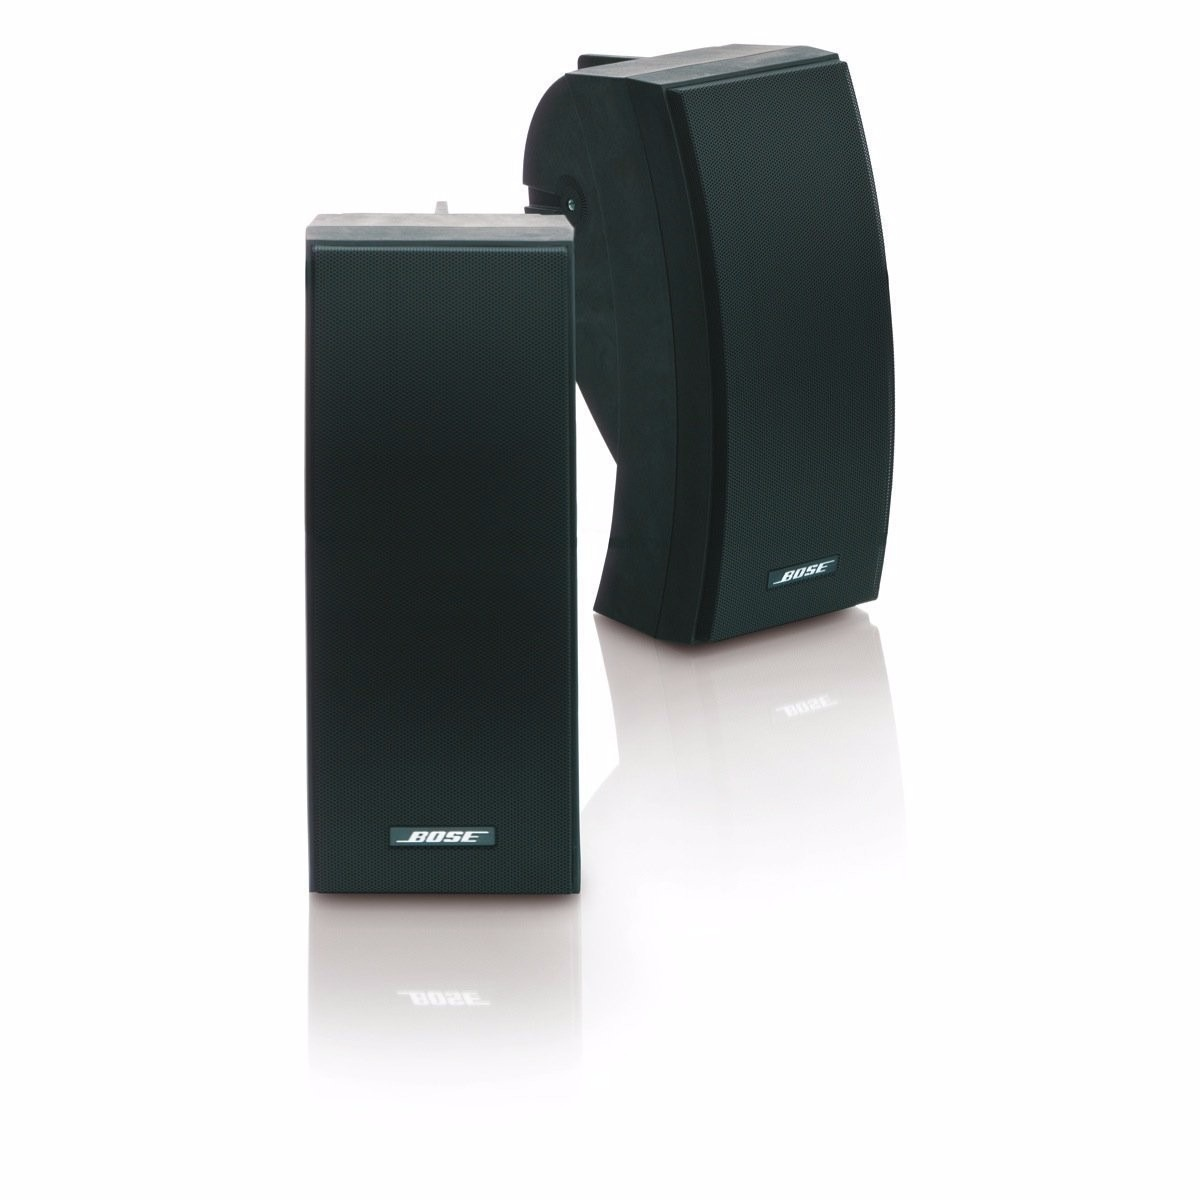 Enceinte Bluetooth Exterieur Kit Bocinas Bose Amplificador Altavoces Con Bluetooth Wifi